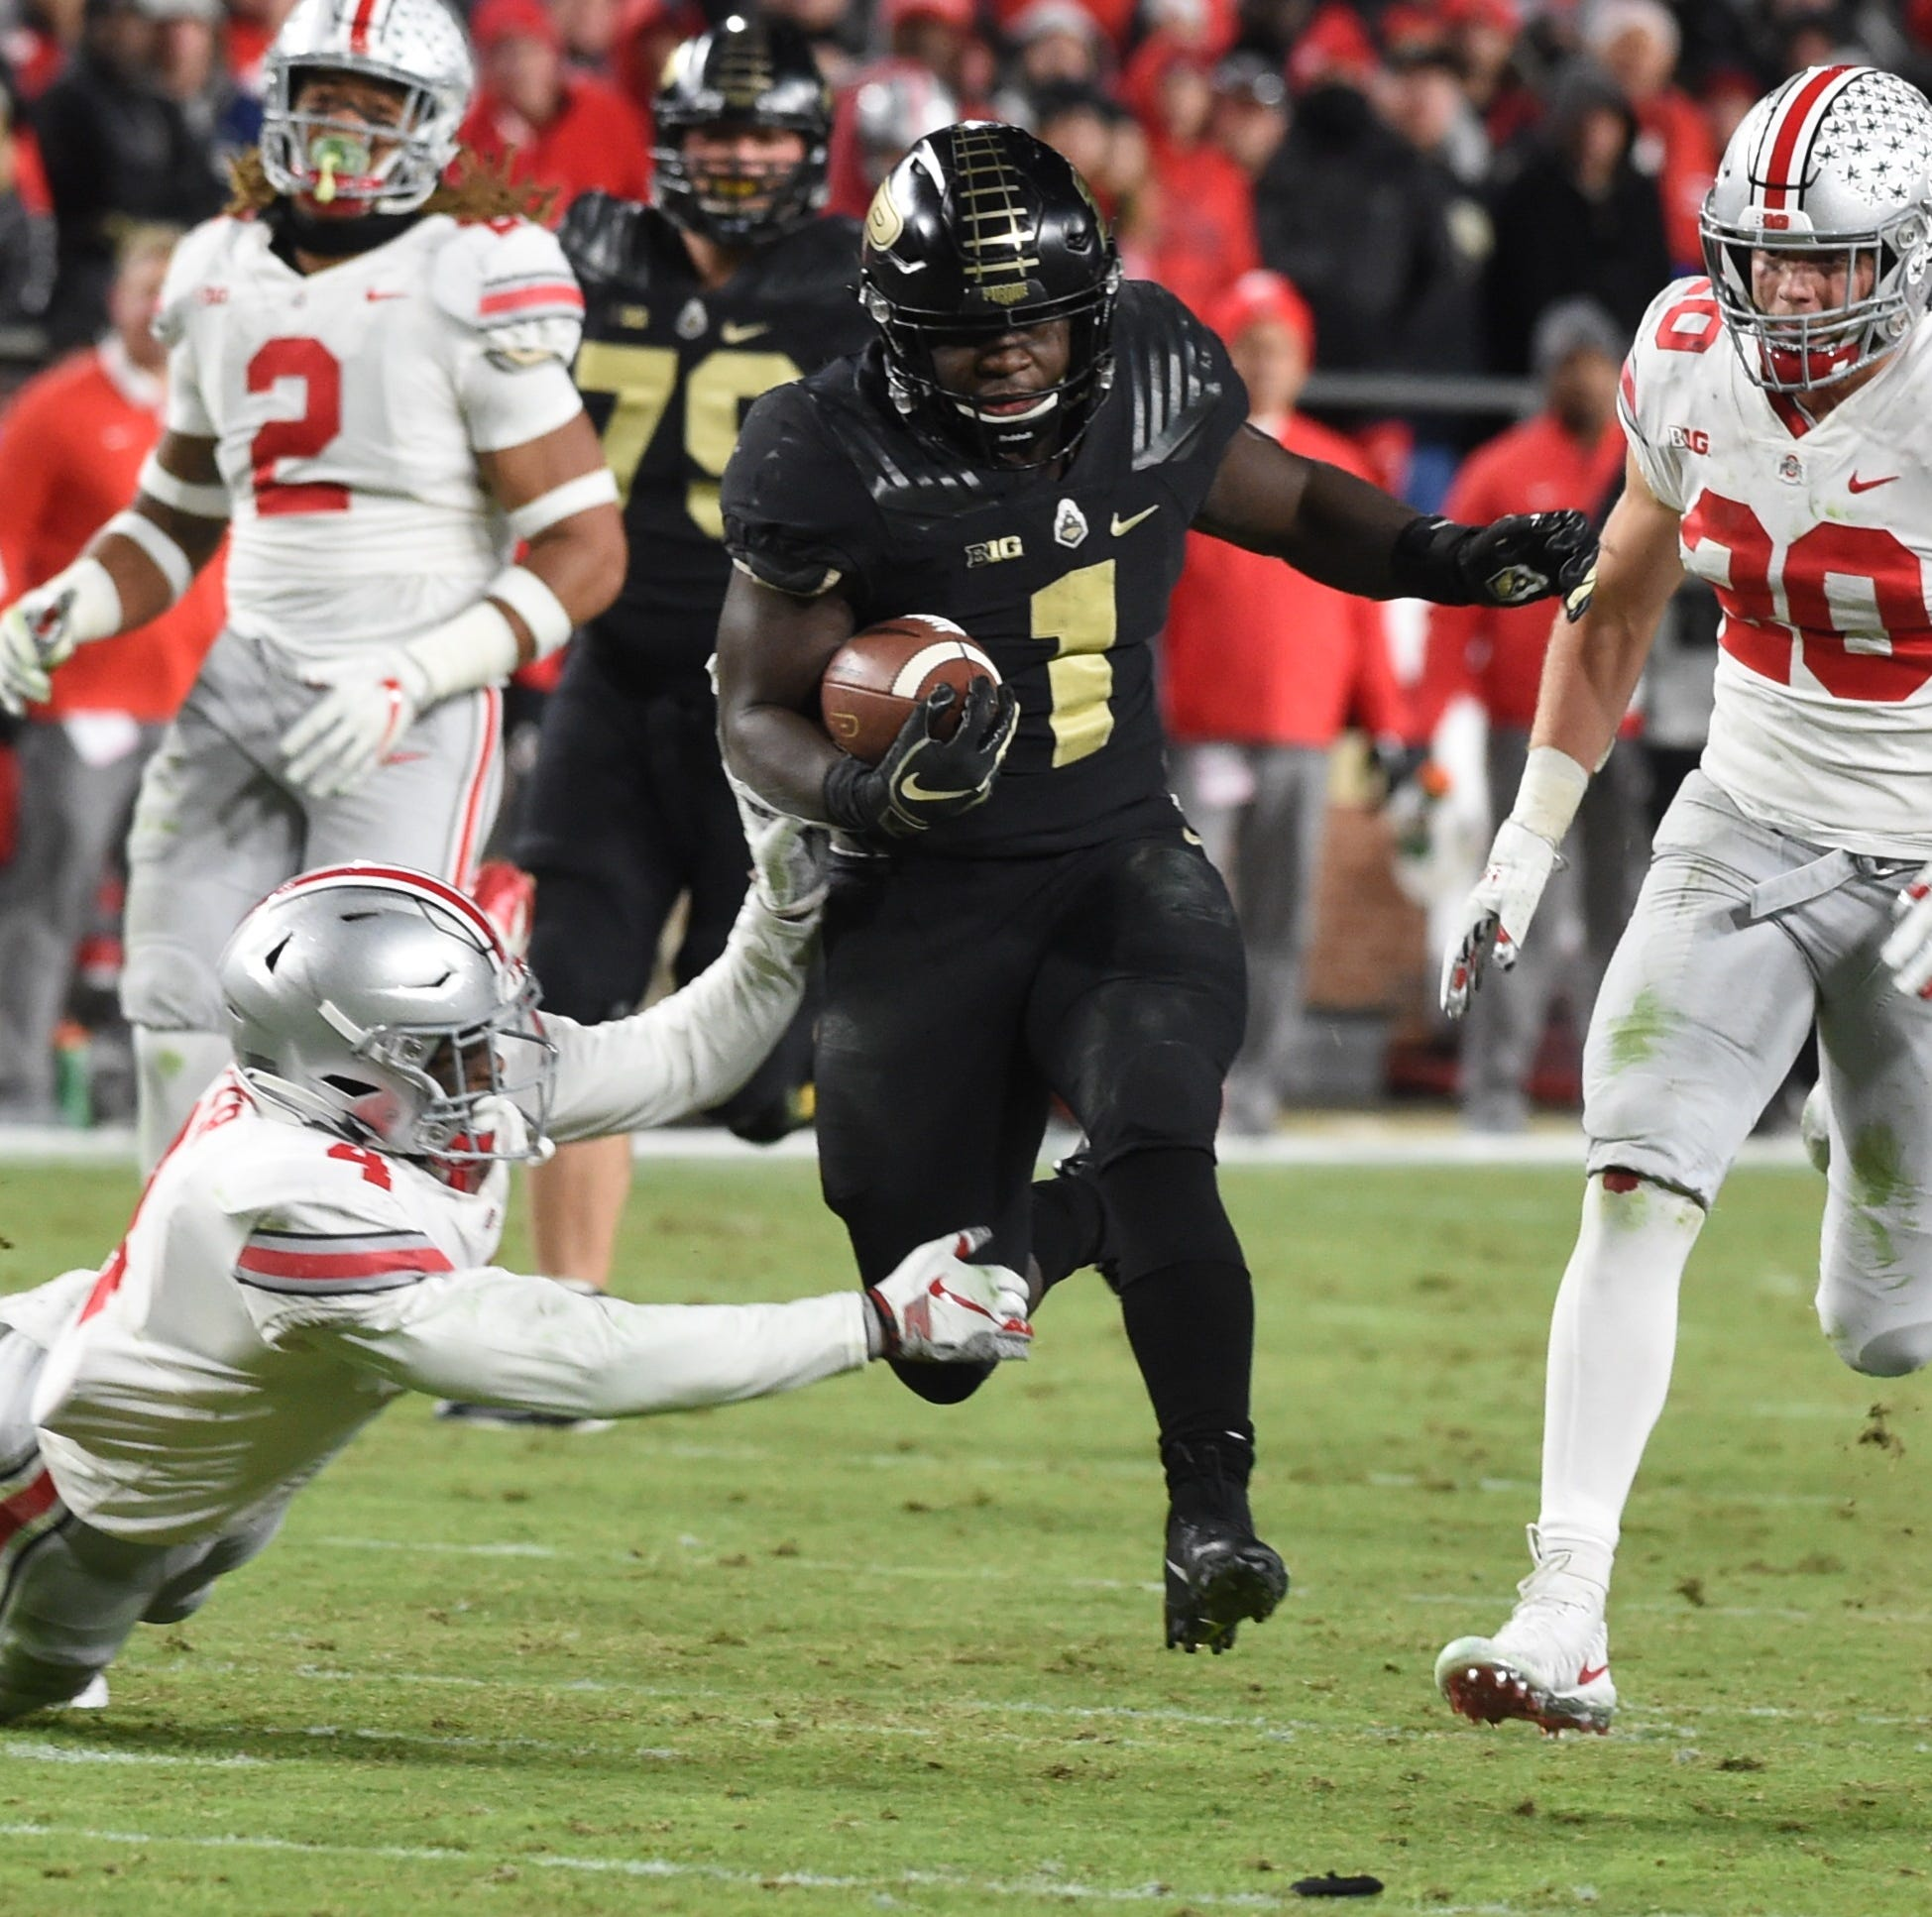 Purdue running back D.J. Knox earns national honor